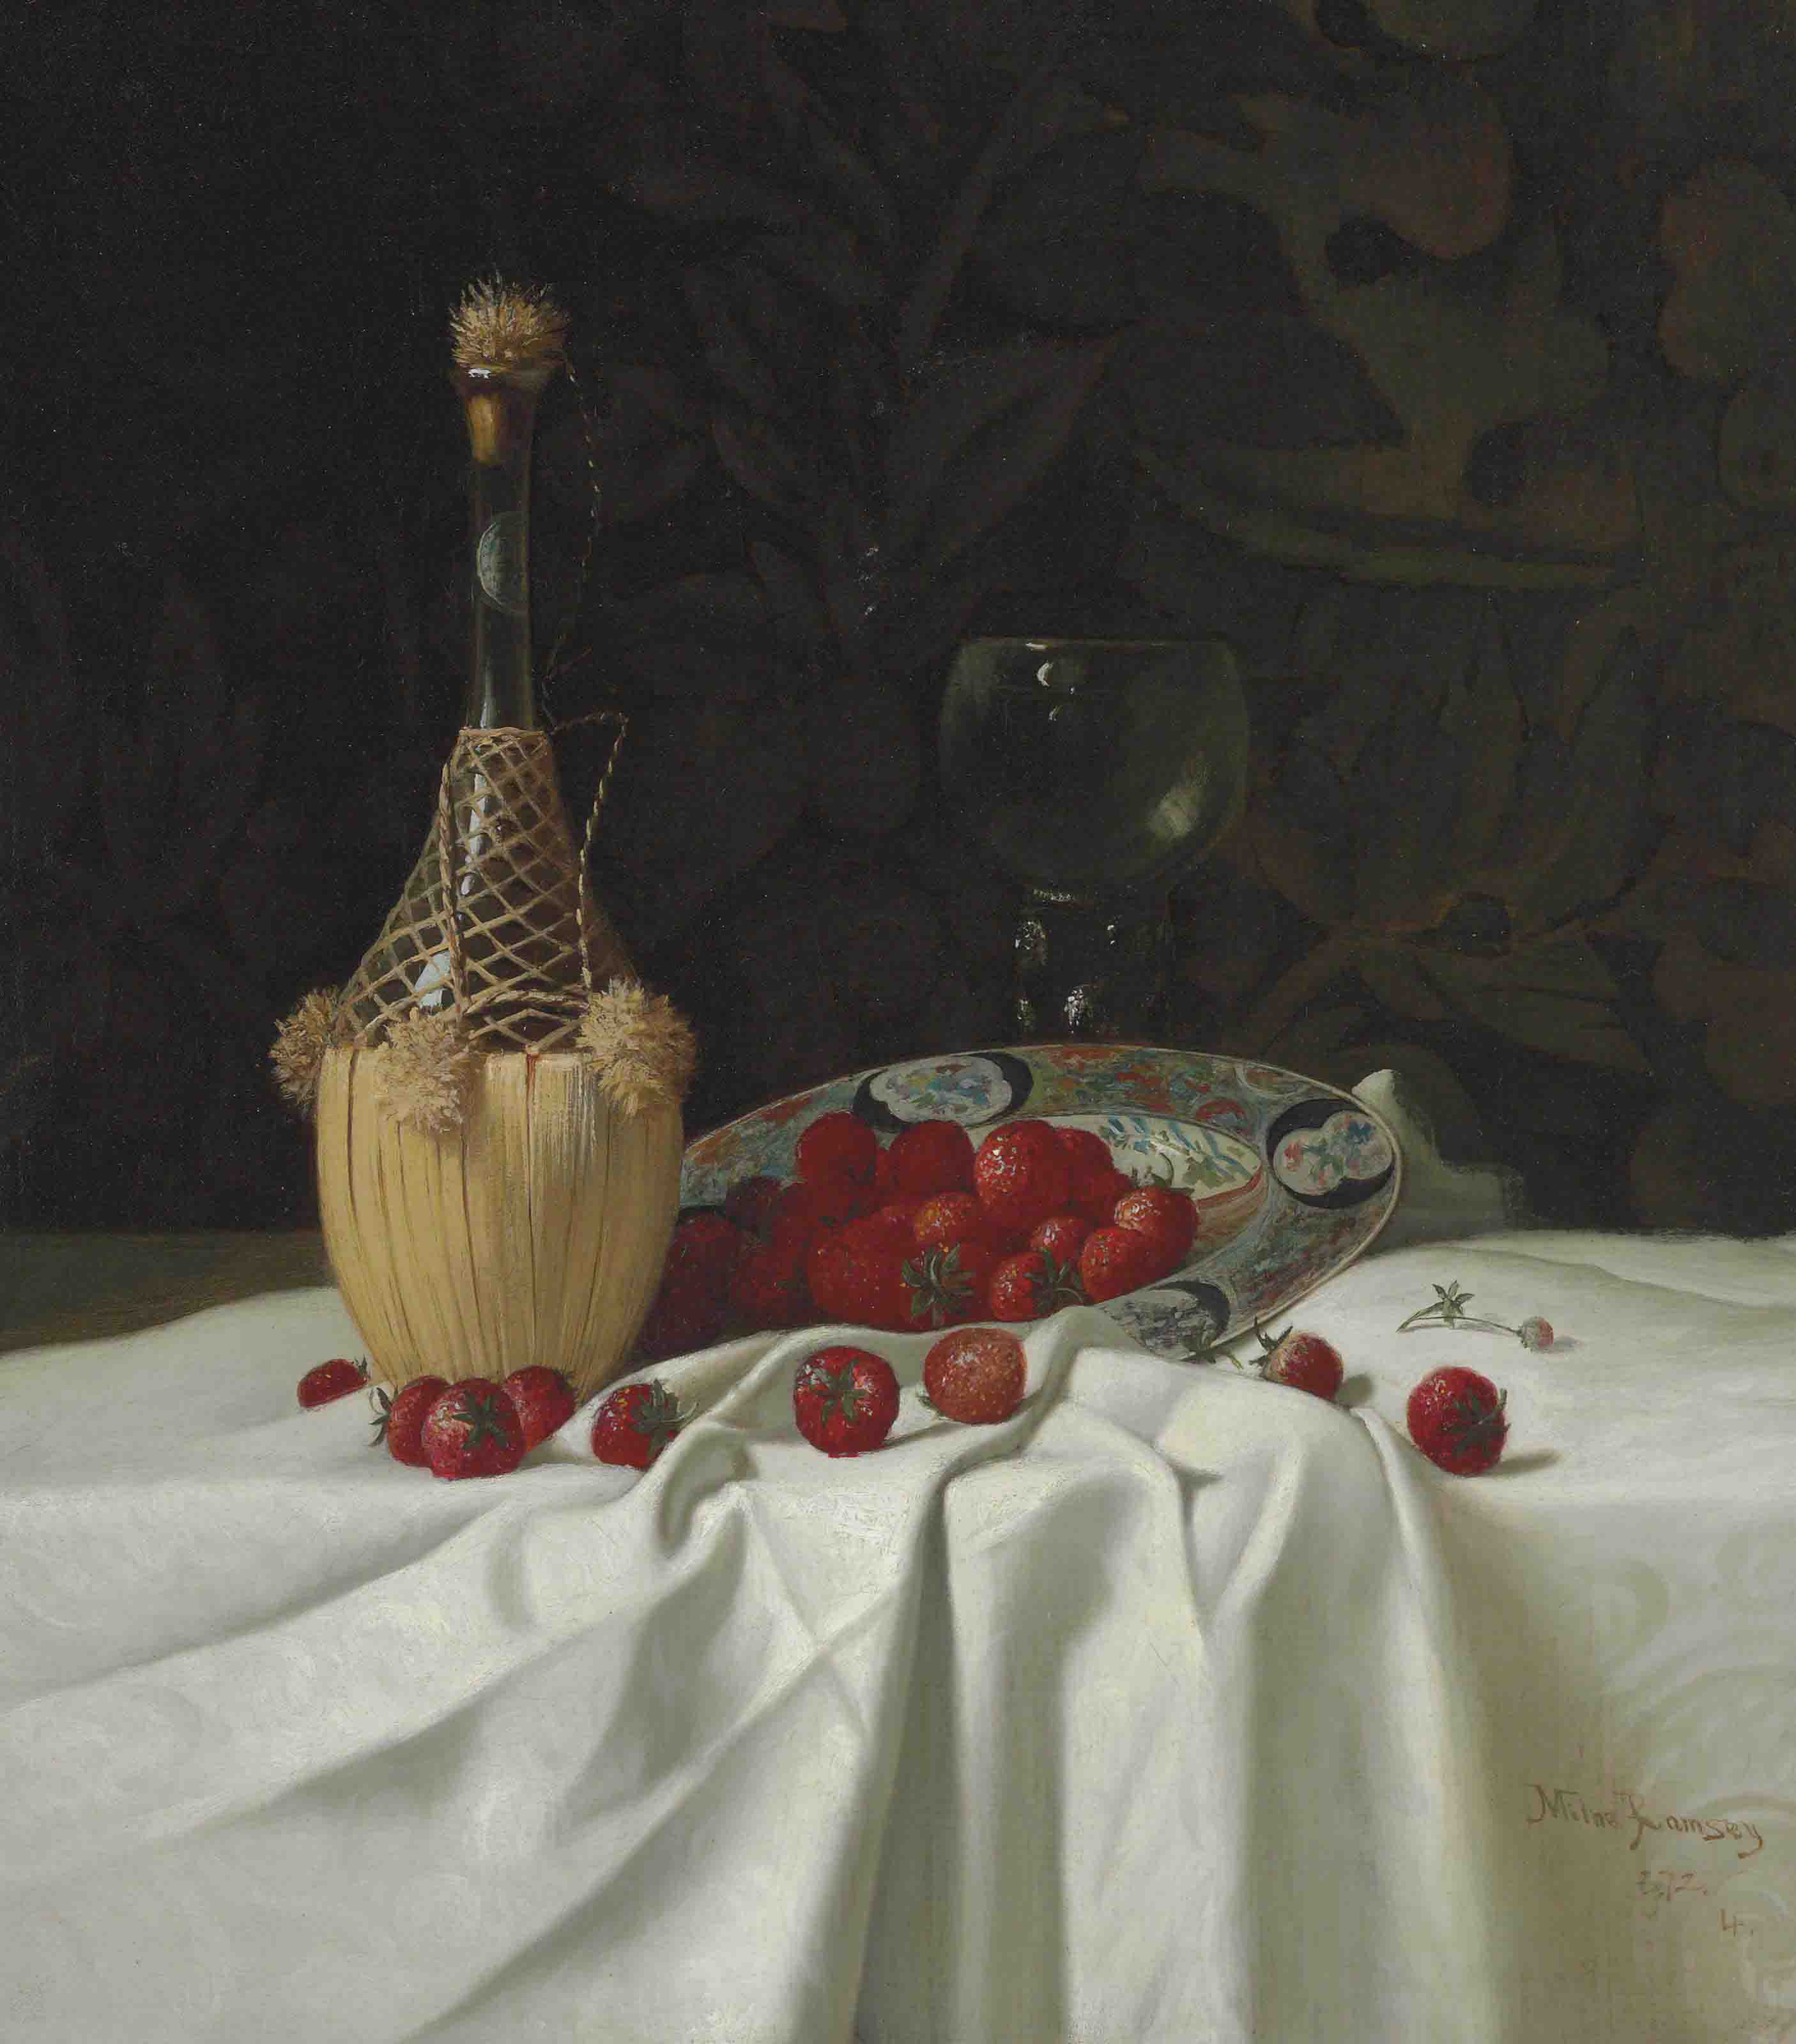 Still Life with Wine Bottle and Strawberries